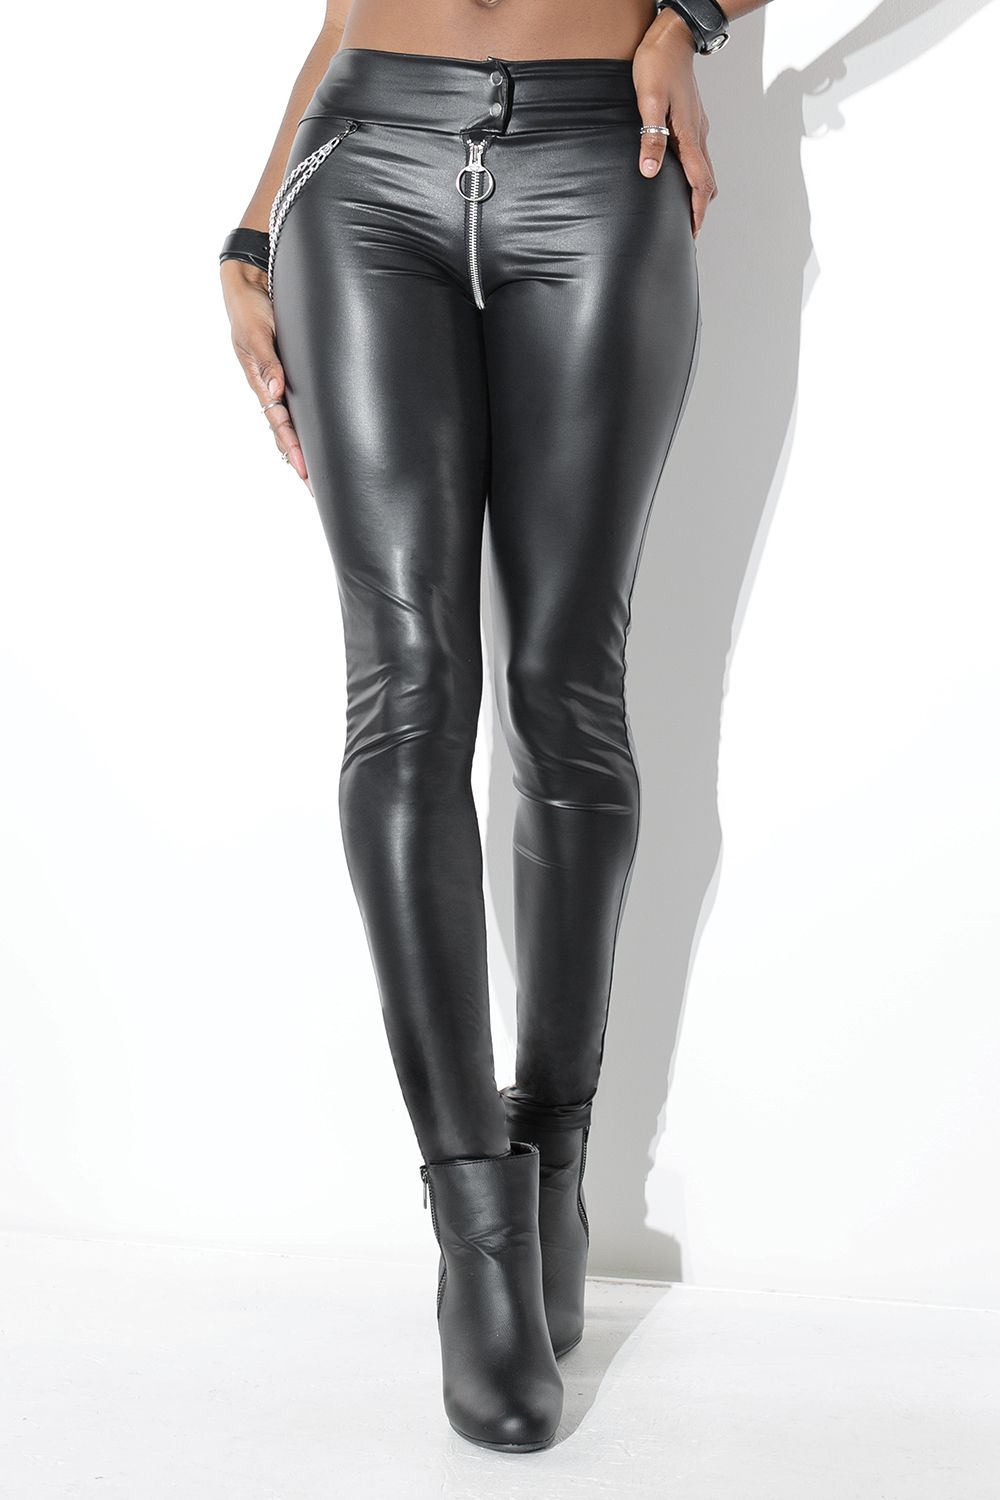 High waisted wetlook pants 9380 Edmonton